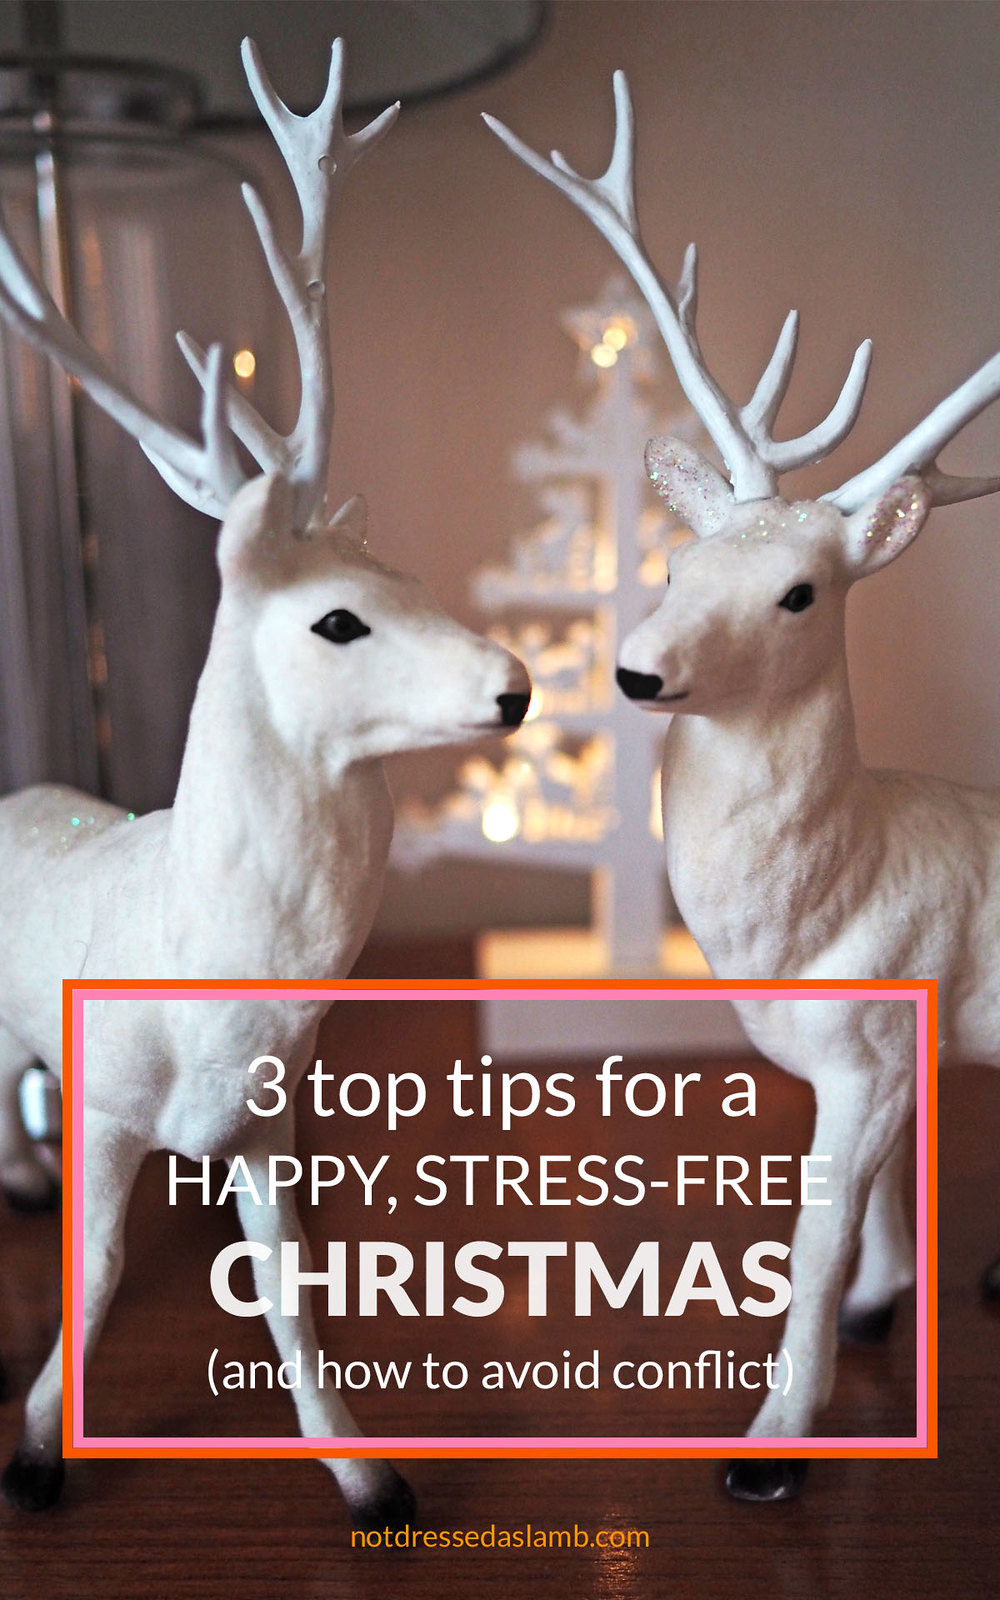 3 Top Tips for a Happy, Stress-Free Christmas (Avoiding Conflicts!) | Not Dressed As Lamb